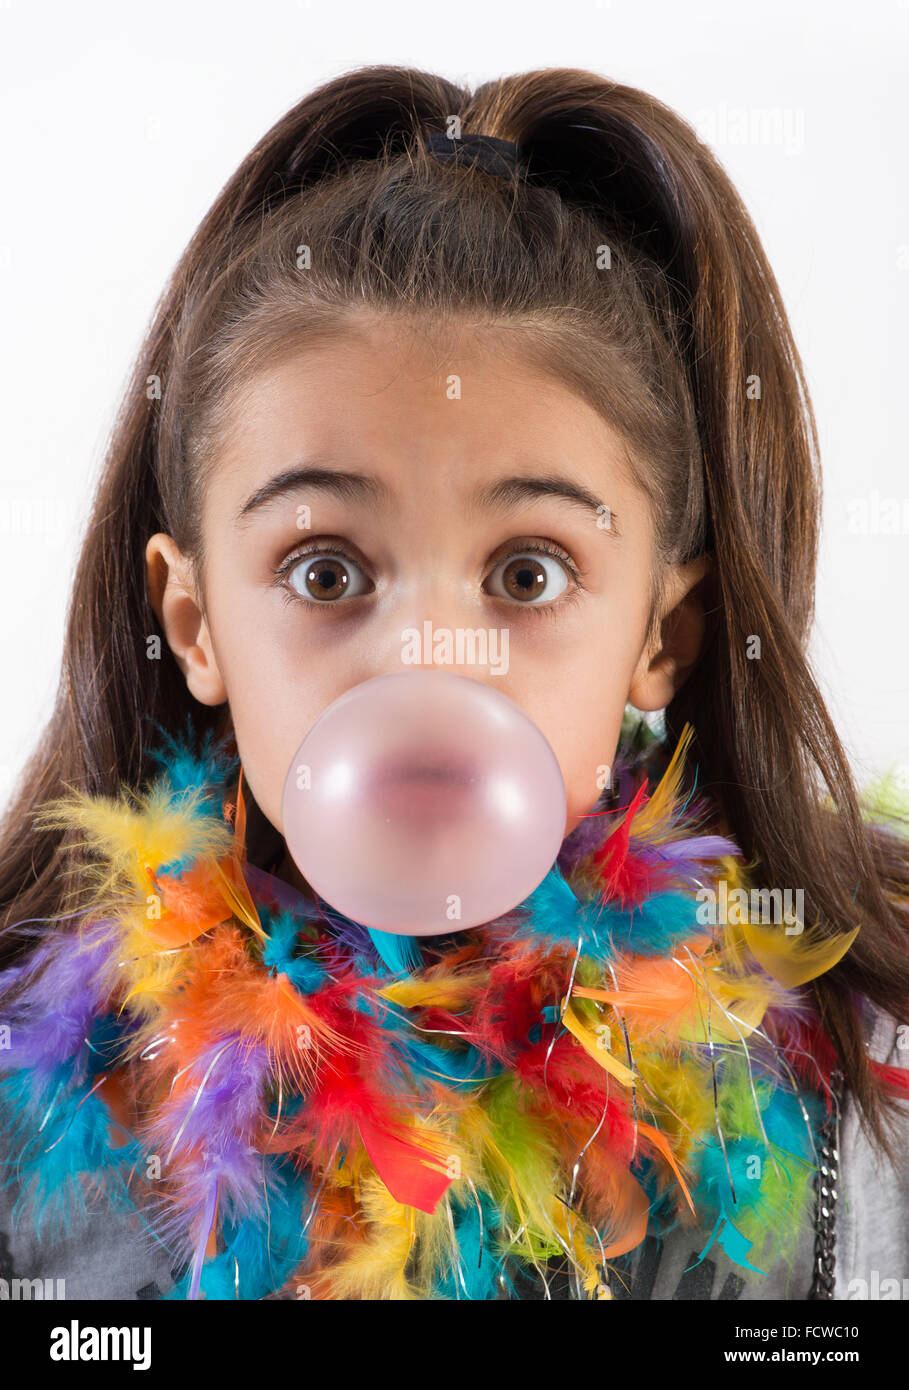 Cute little girl blowing a chewing gum bubble with wide surprised eyes and colorful feathers around her neck - Stock Image